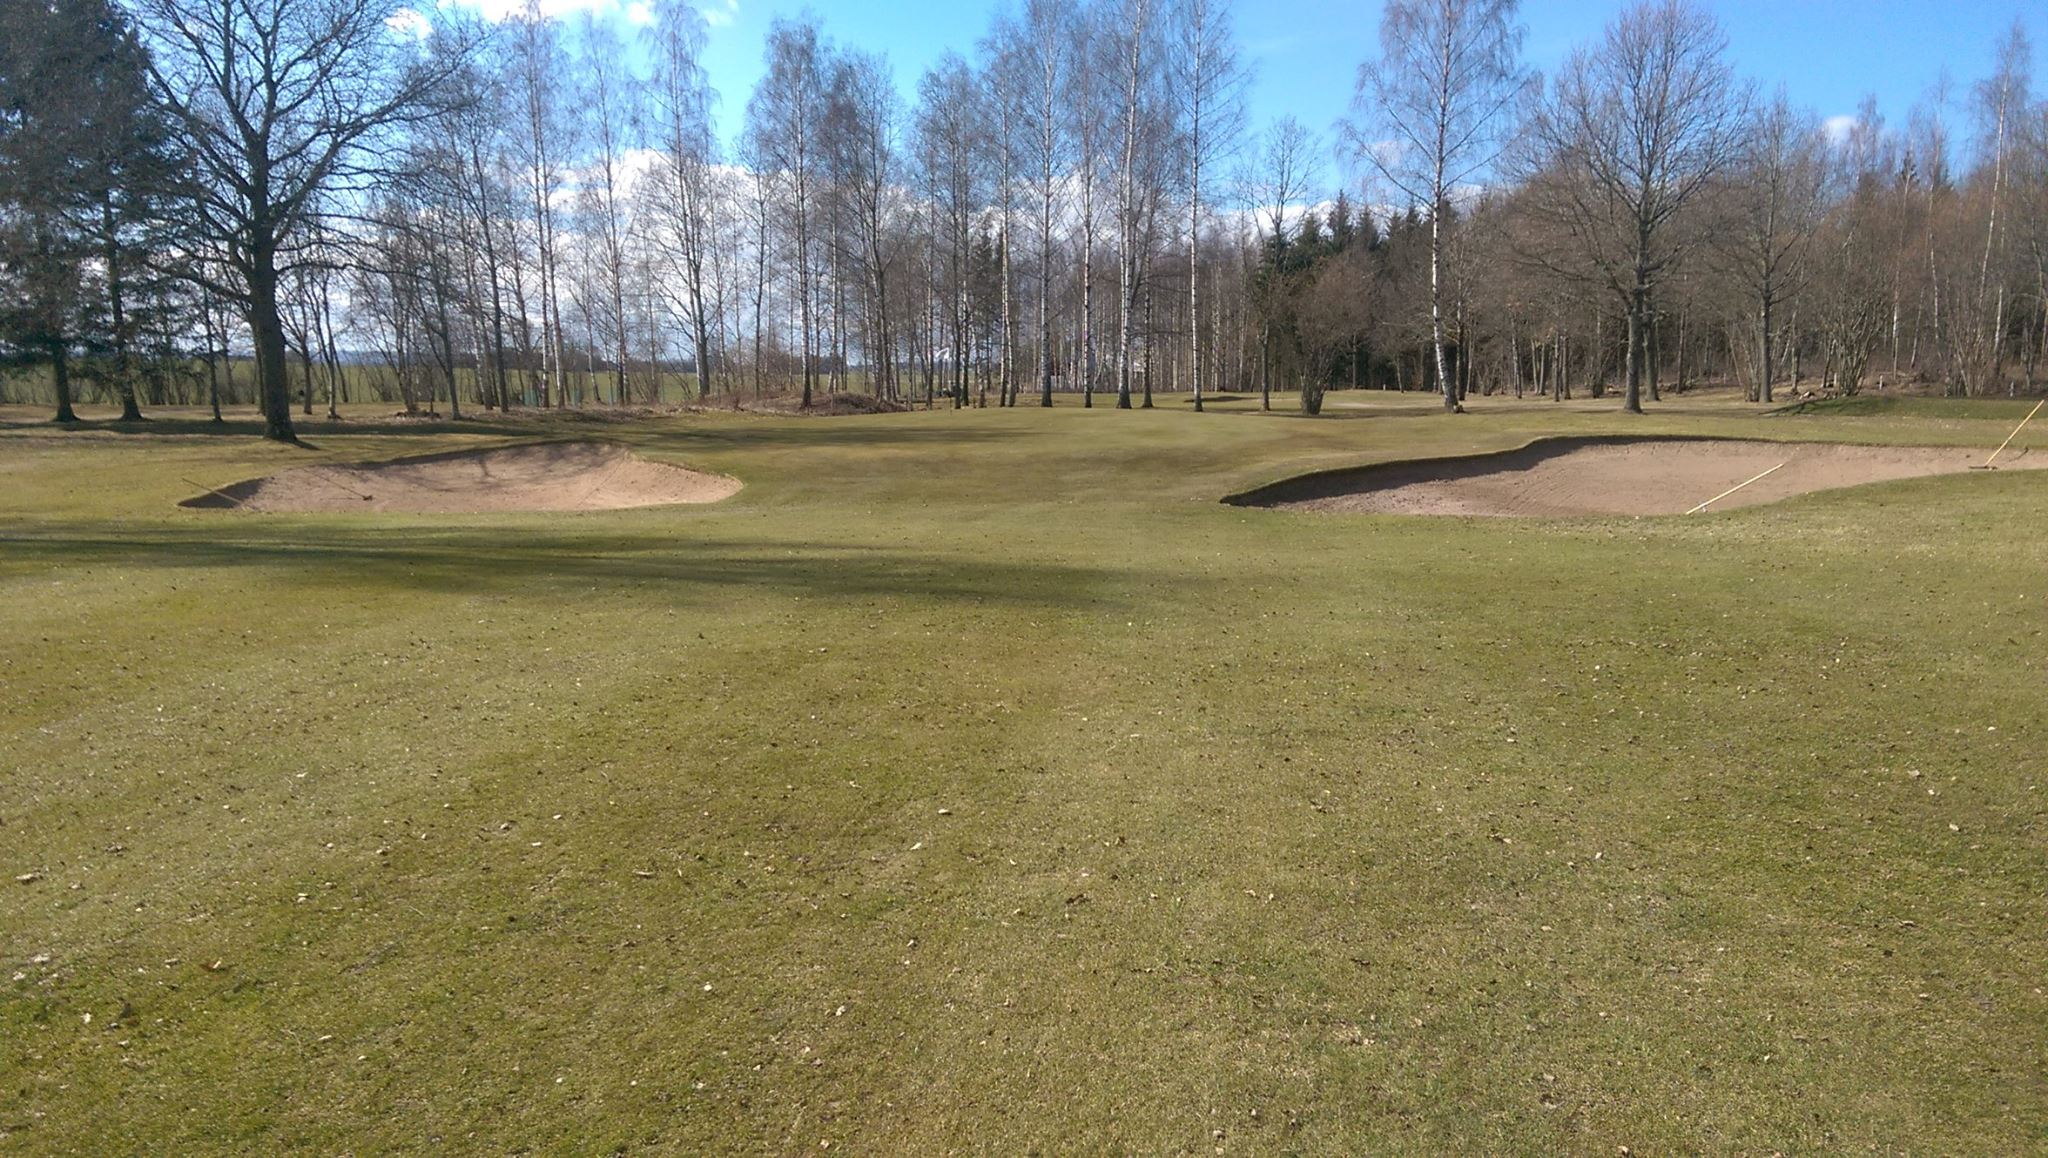 Overview of golf course named Vadstena Golfklubb